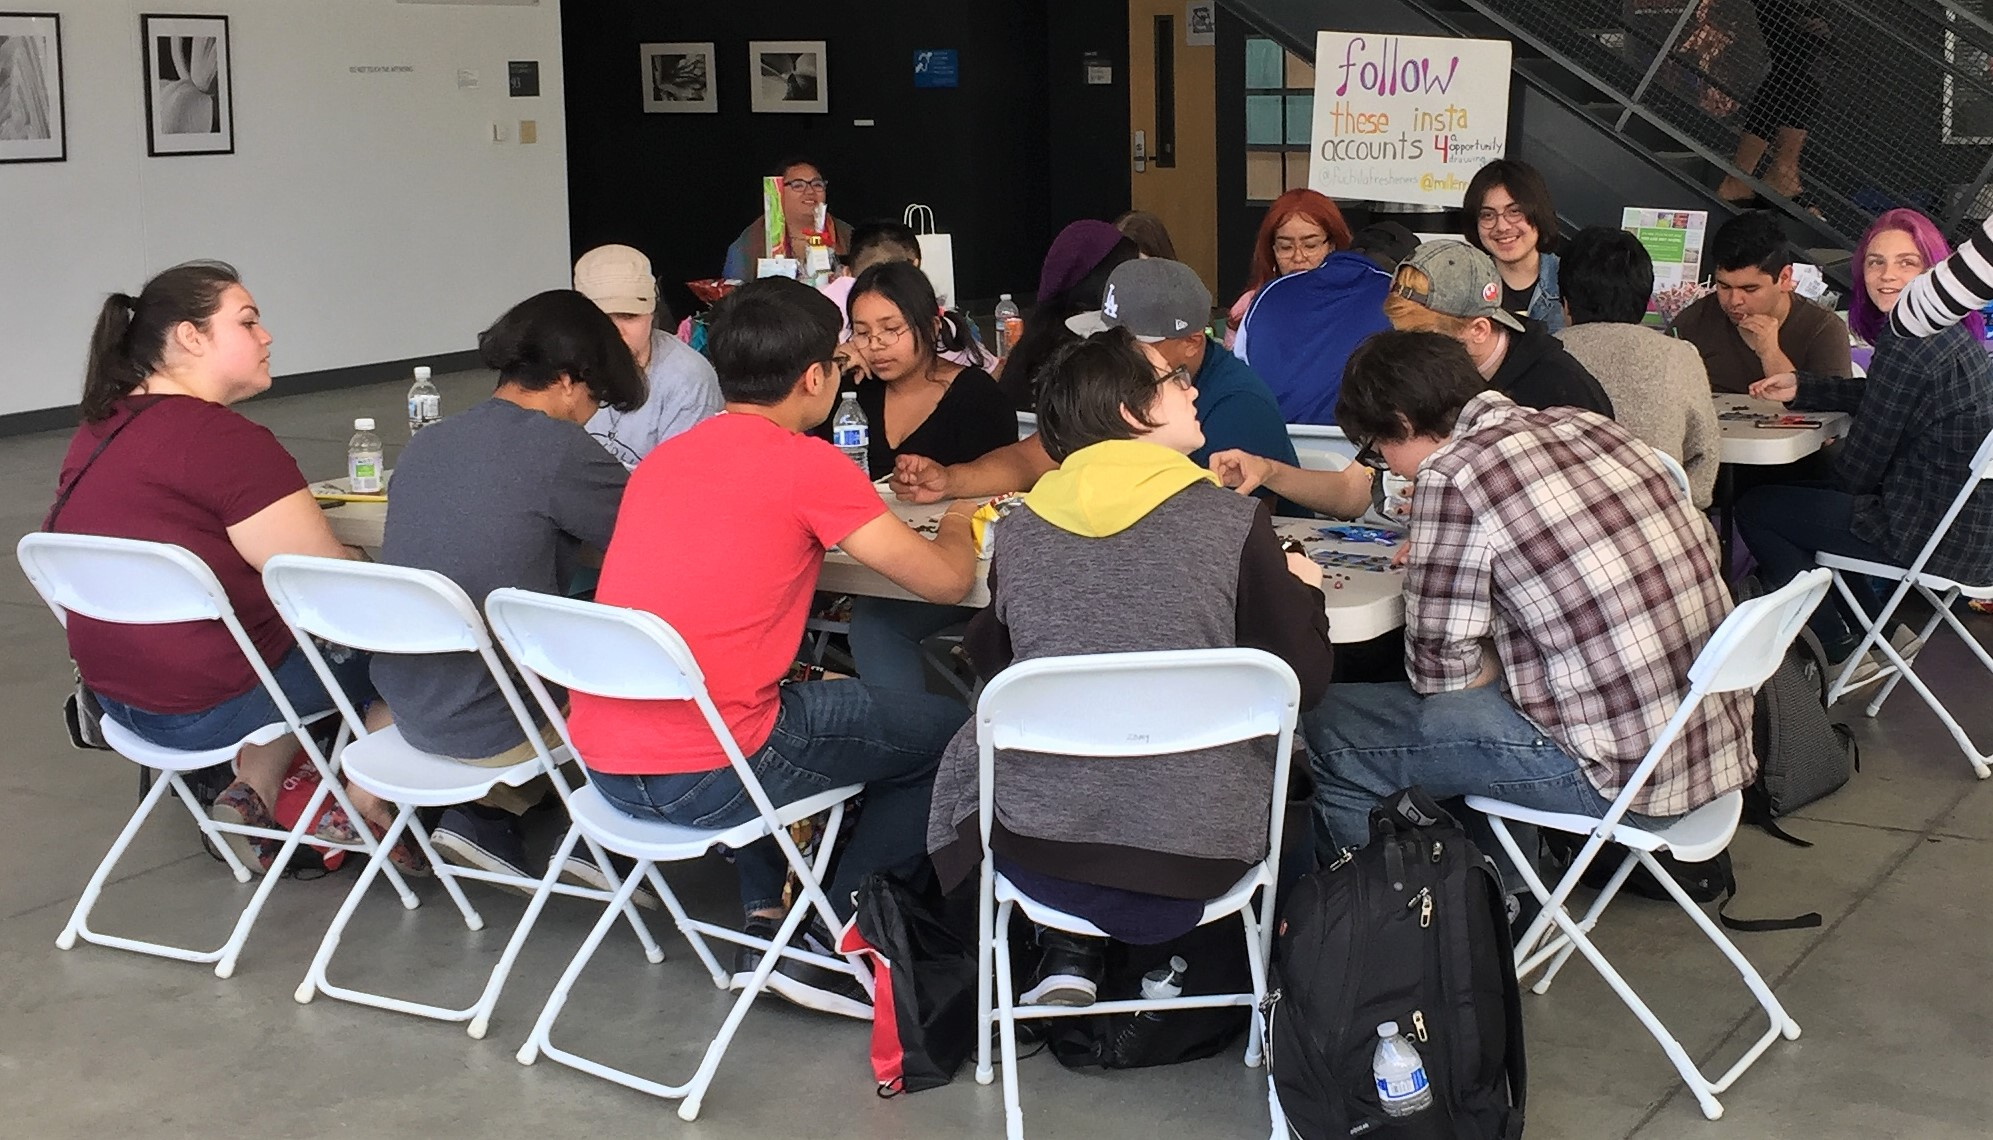 Seats and board games filled up as many panthers came to participate in the Millennial Loteria event.